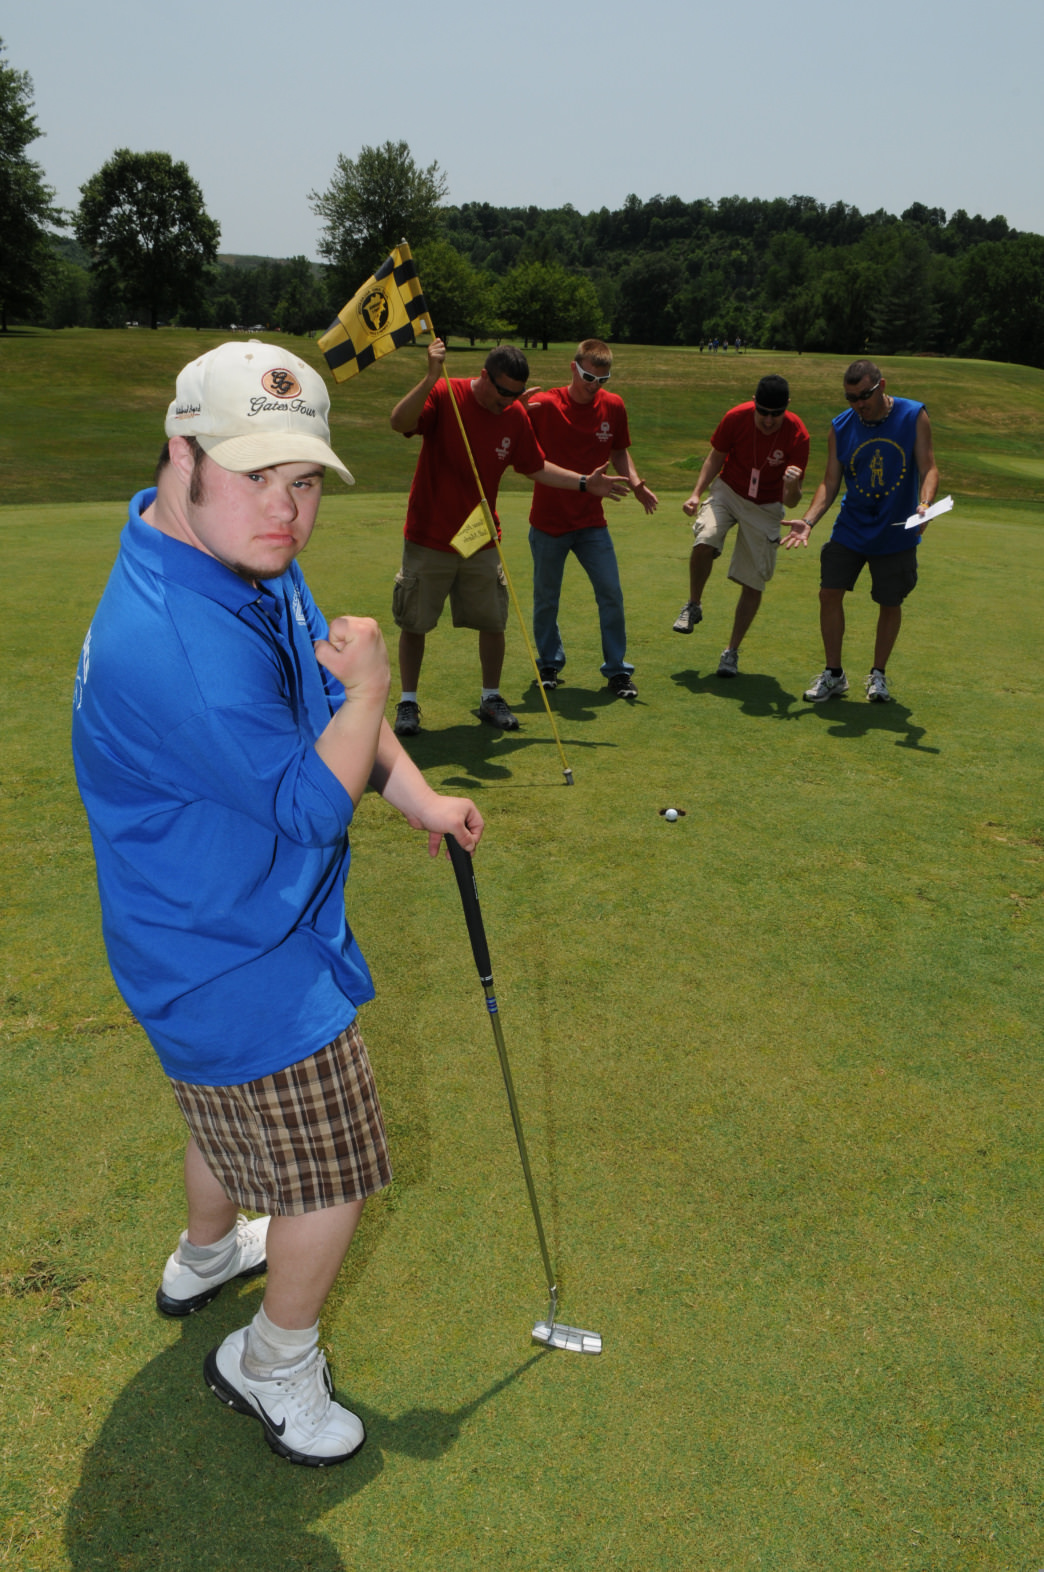 The Special Olympics have held golf tournaments at Coonskin Park. Here, Spencer Stemple celebrates his putt.